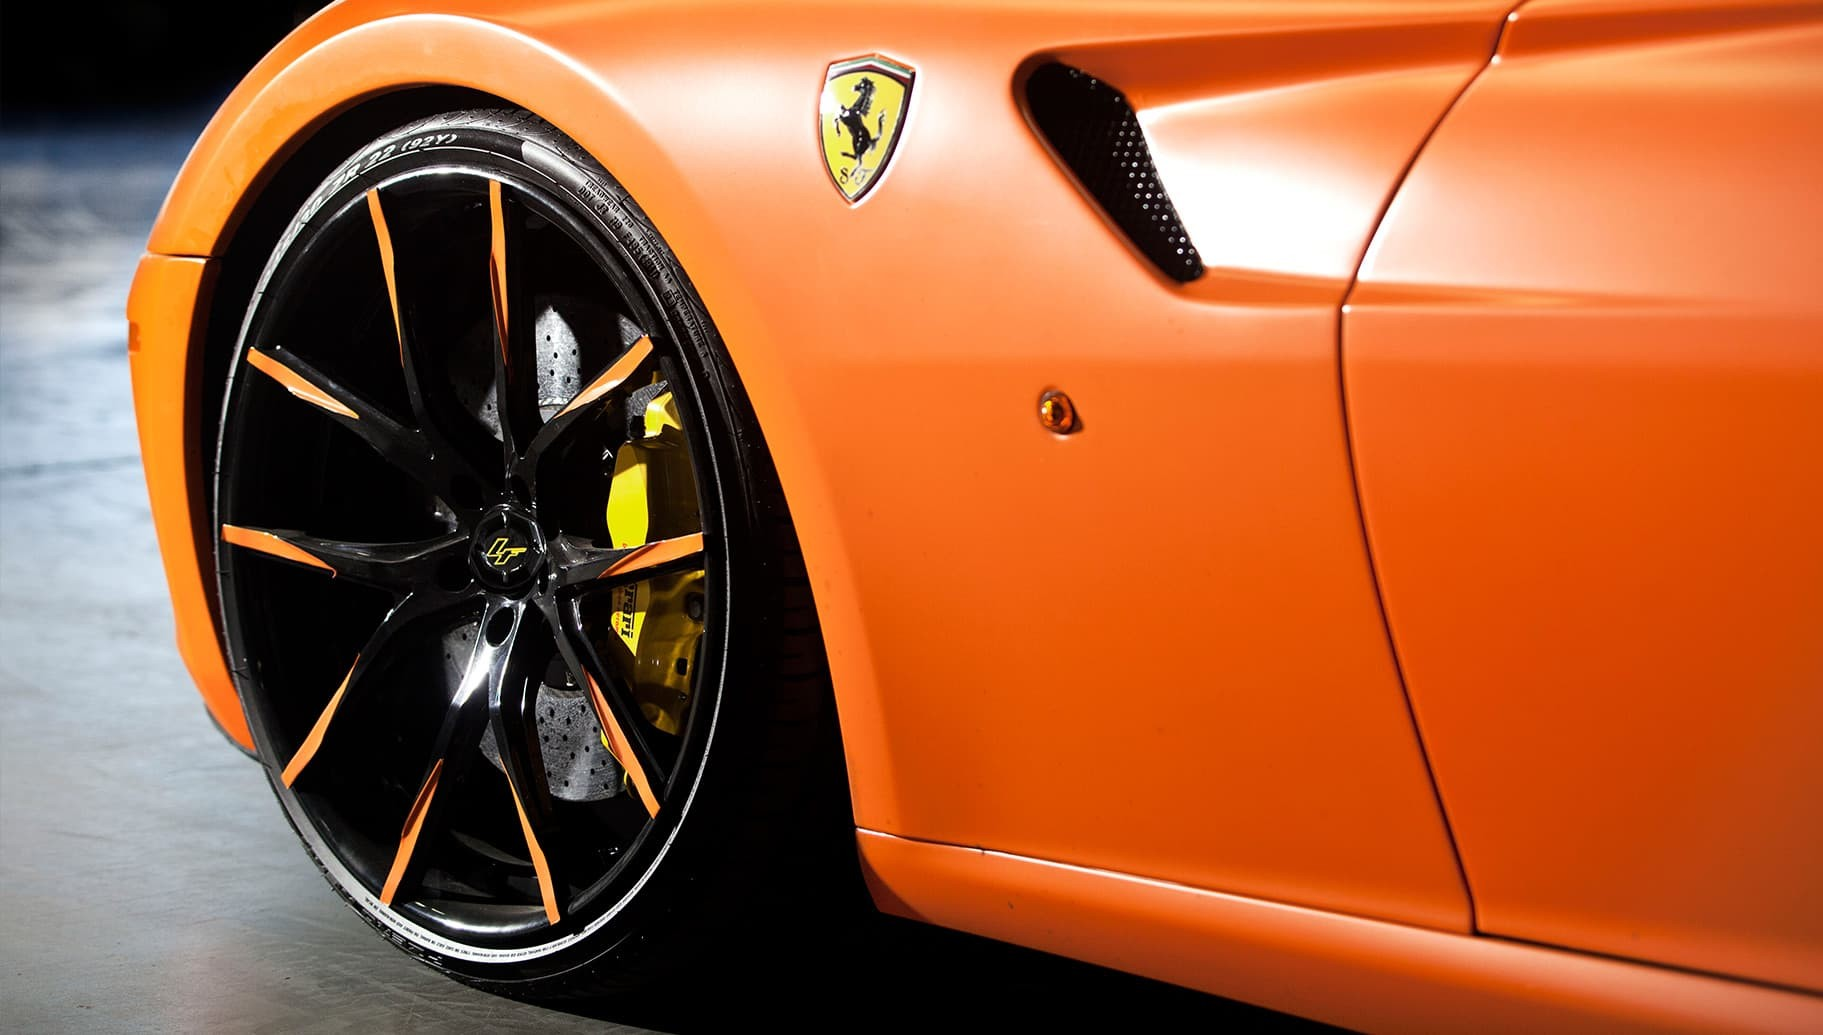 Custom LZ-109 on the Ferrari 599.